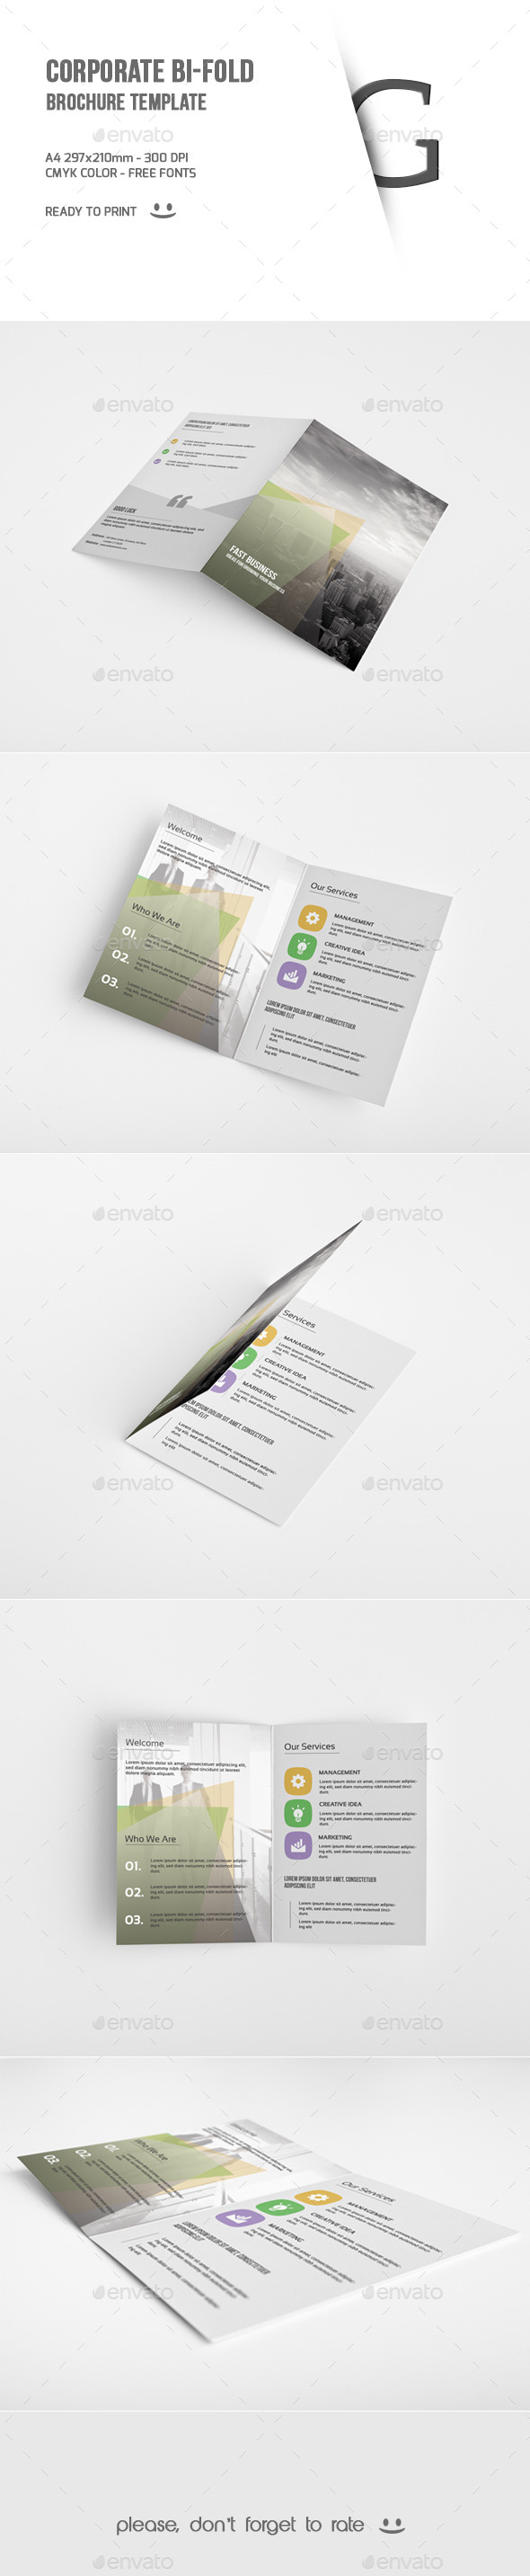 GraphicRiver Corporate Bi-Fold Brochure Template 9712396